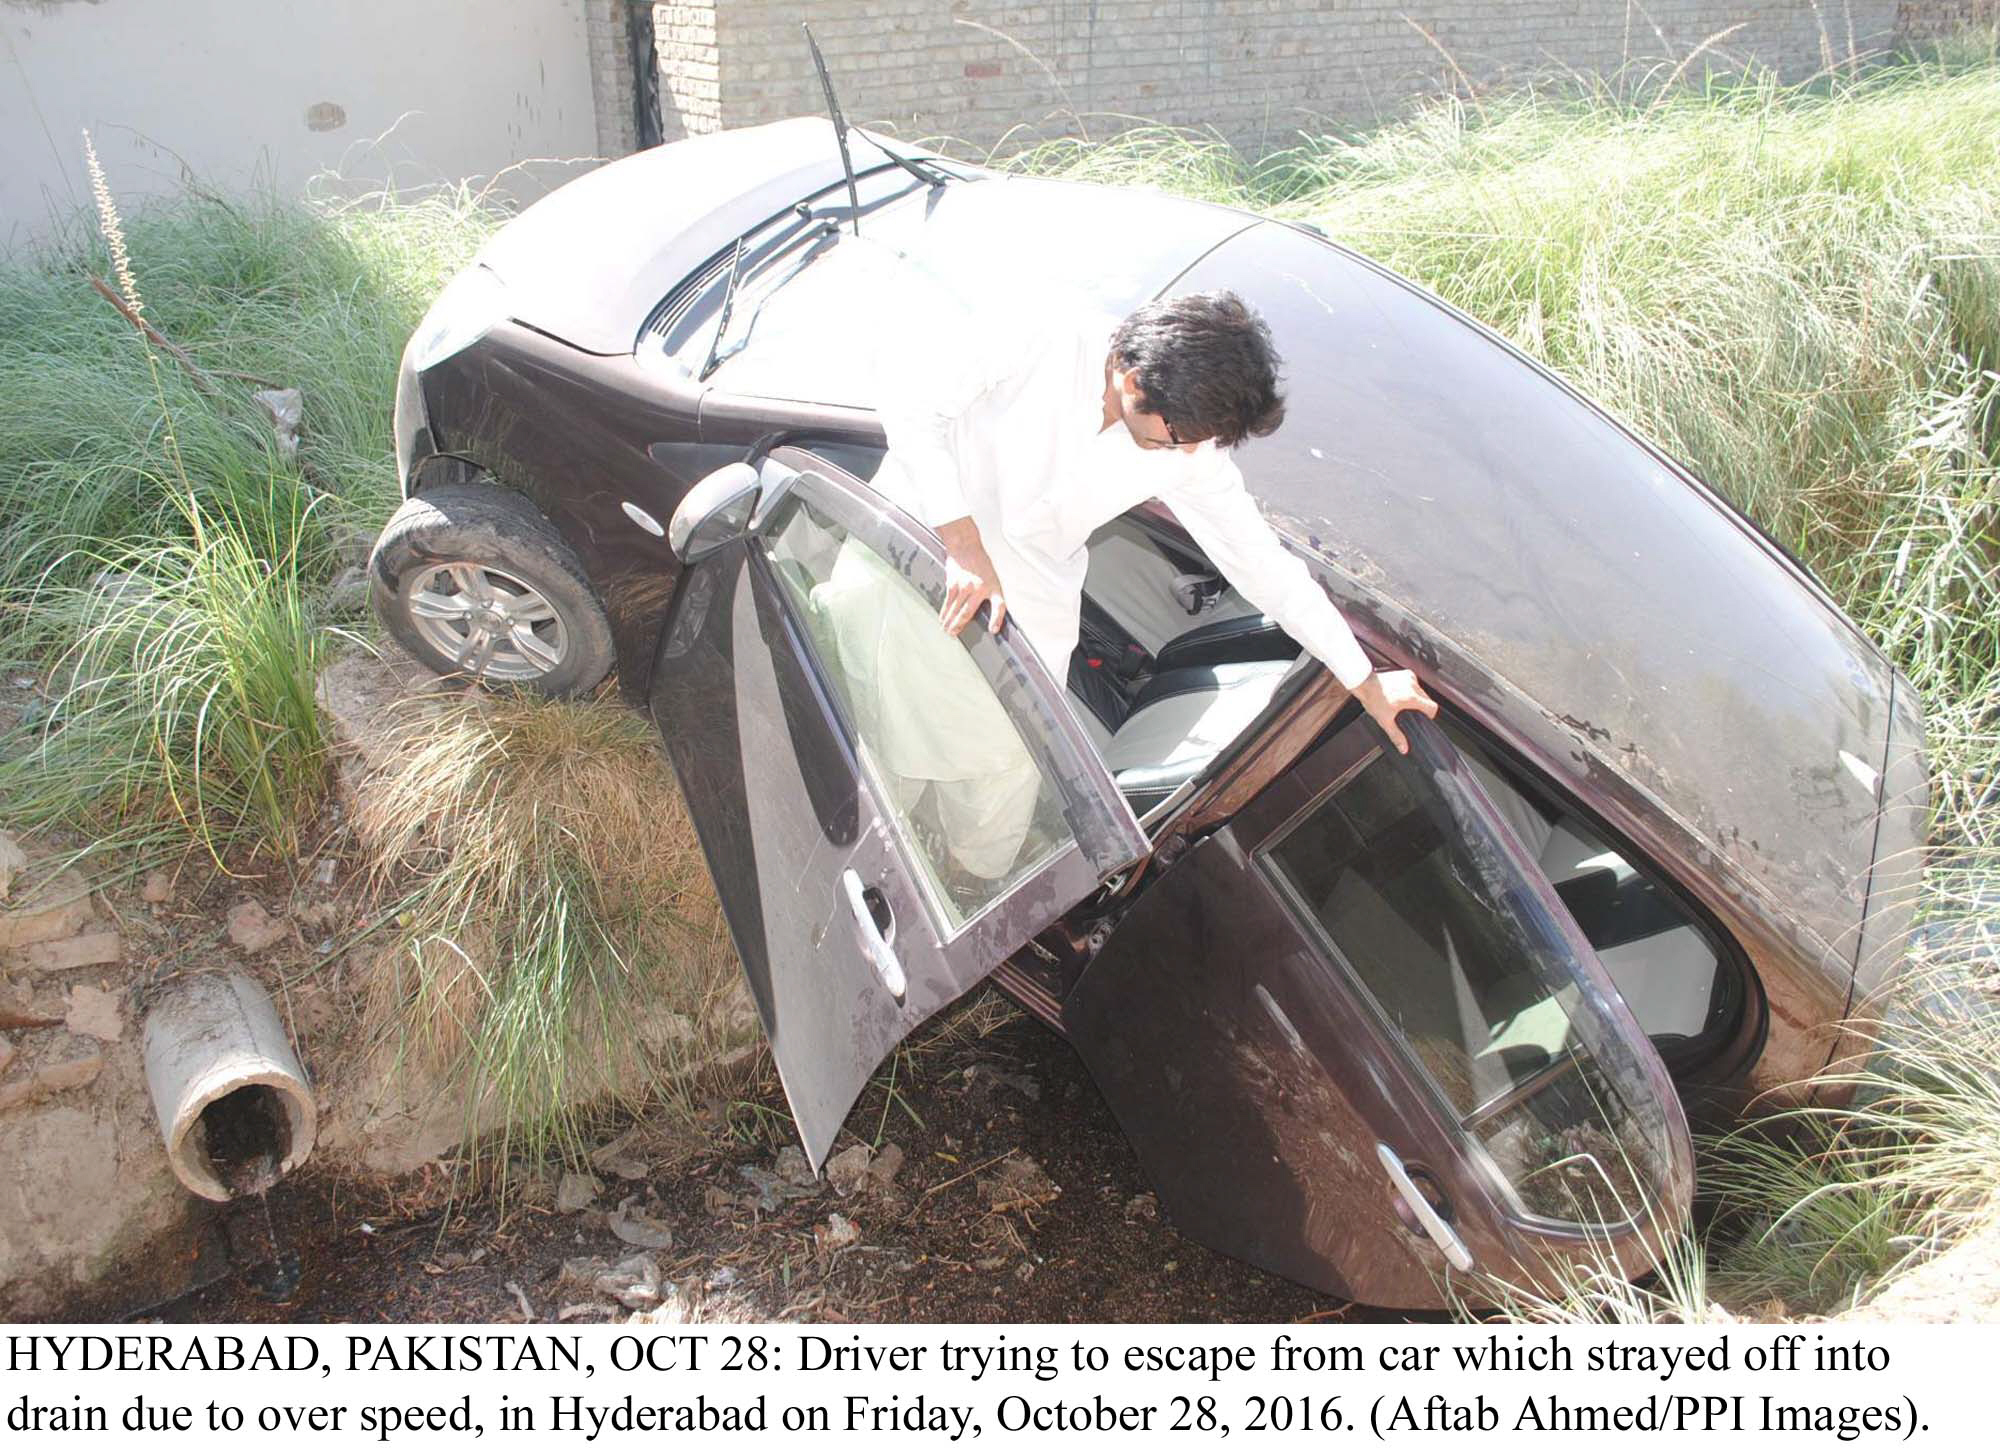 Fatal accident: Four killed after car falls off bridge near Mardan